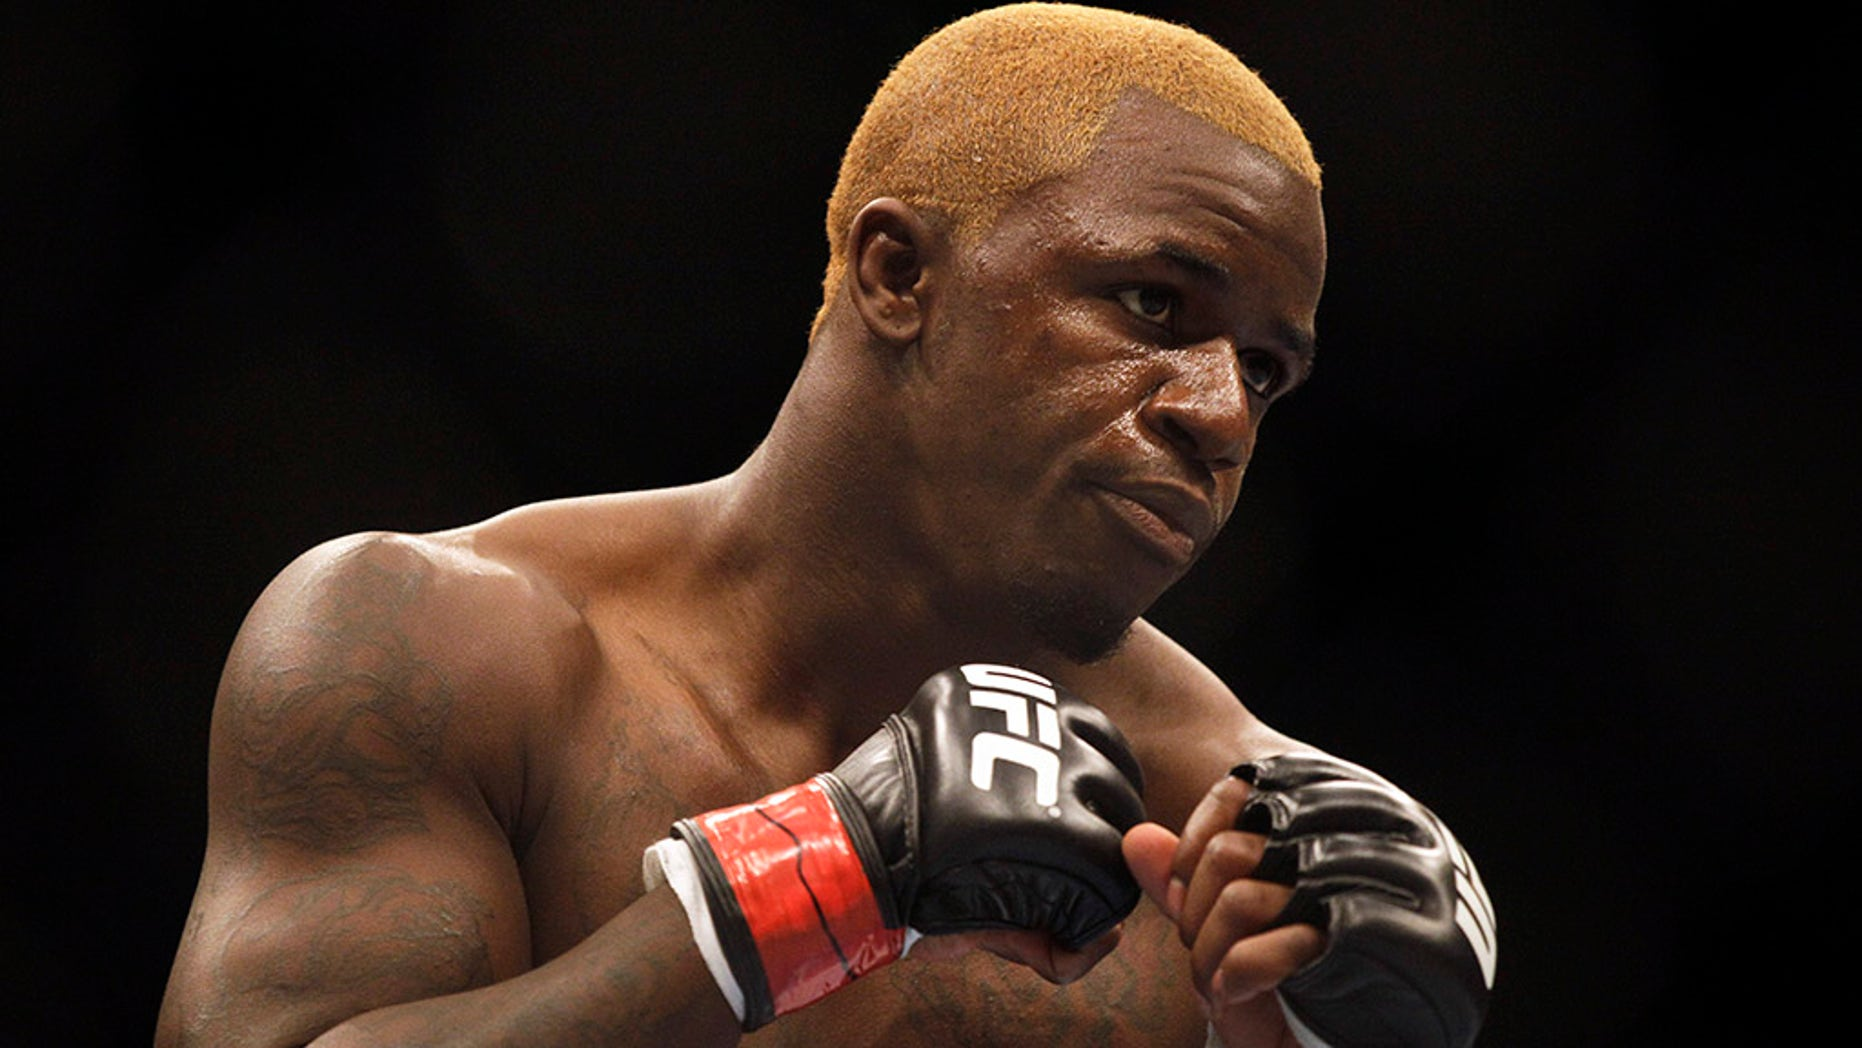 Melvin Guillard is wanted by Denver Police after knocking a man out at a bar earlier this week, TMZ reports.